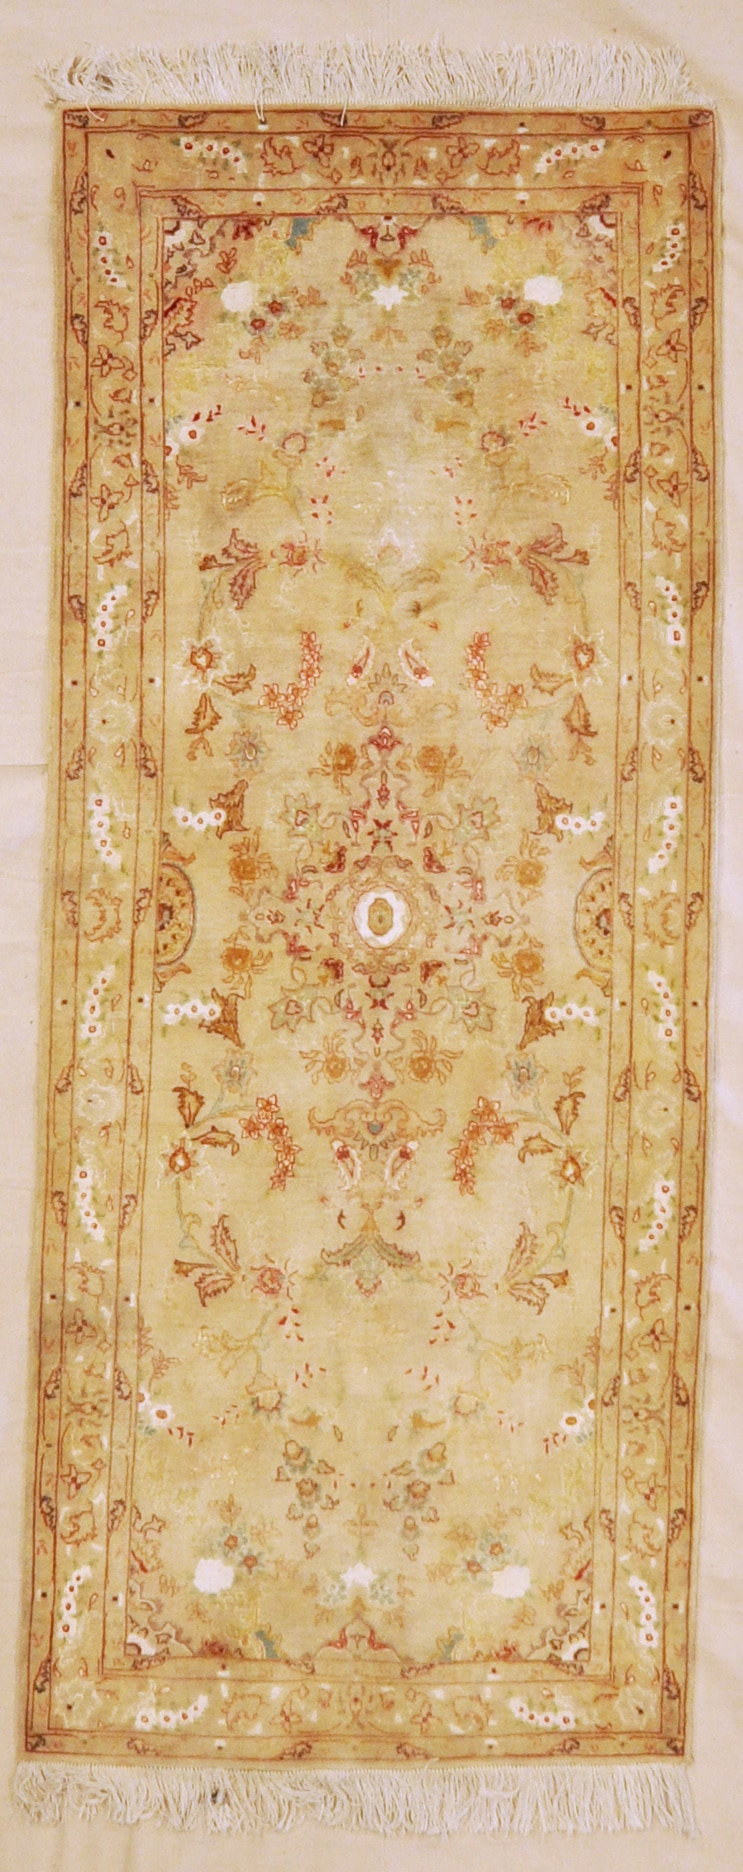 Persian Tabriz Runner Design Santa Barbara Design Center | Rugs and More | Oriental Carpets 32484